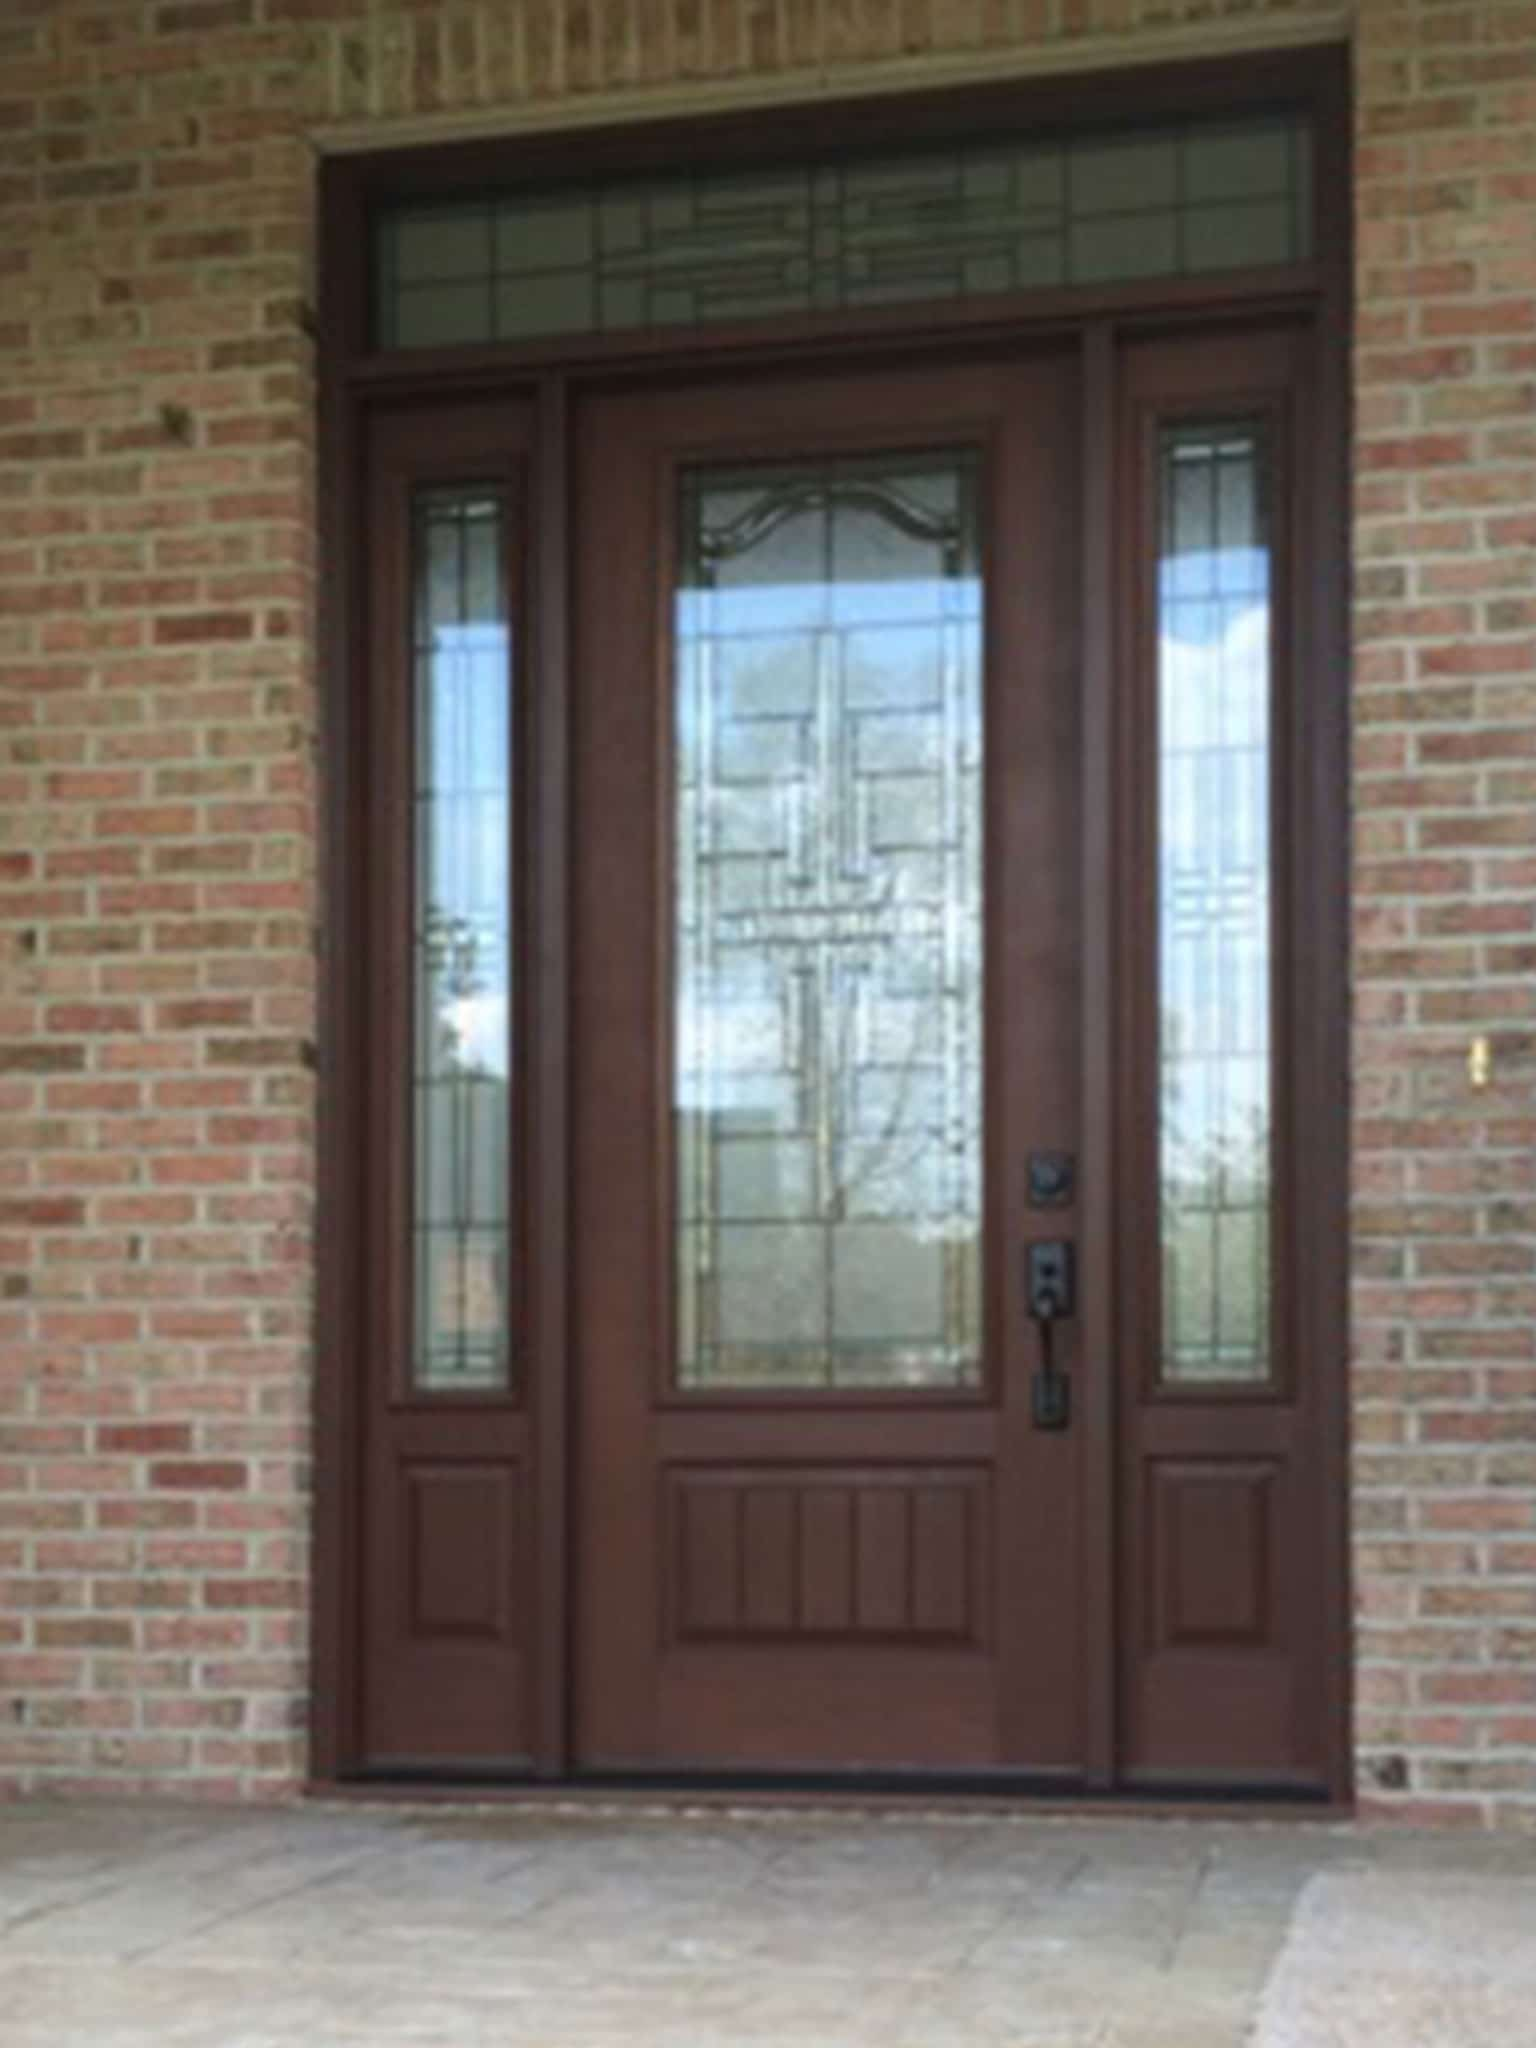 ... entry doors before and after northgate doors ... & northgate doors - 28 images - garage doors before and after ... pezcame.com